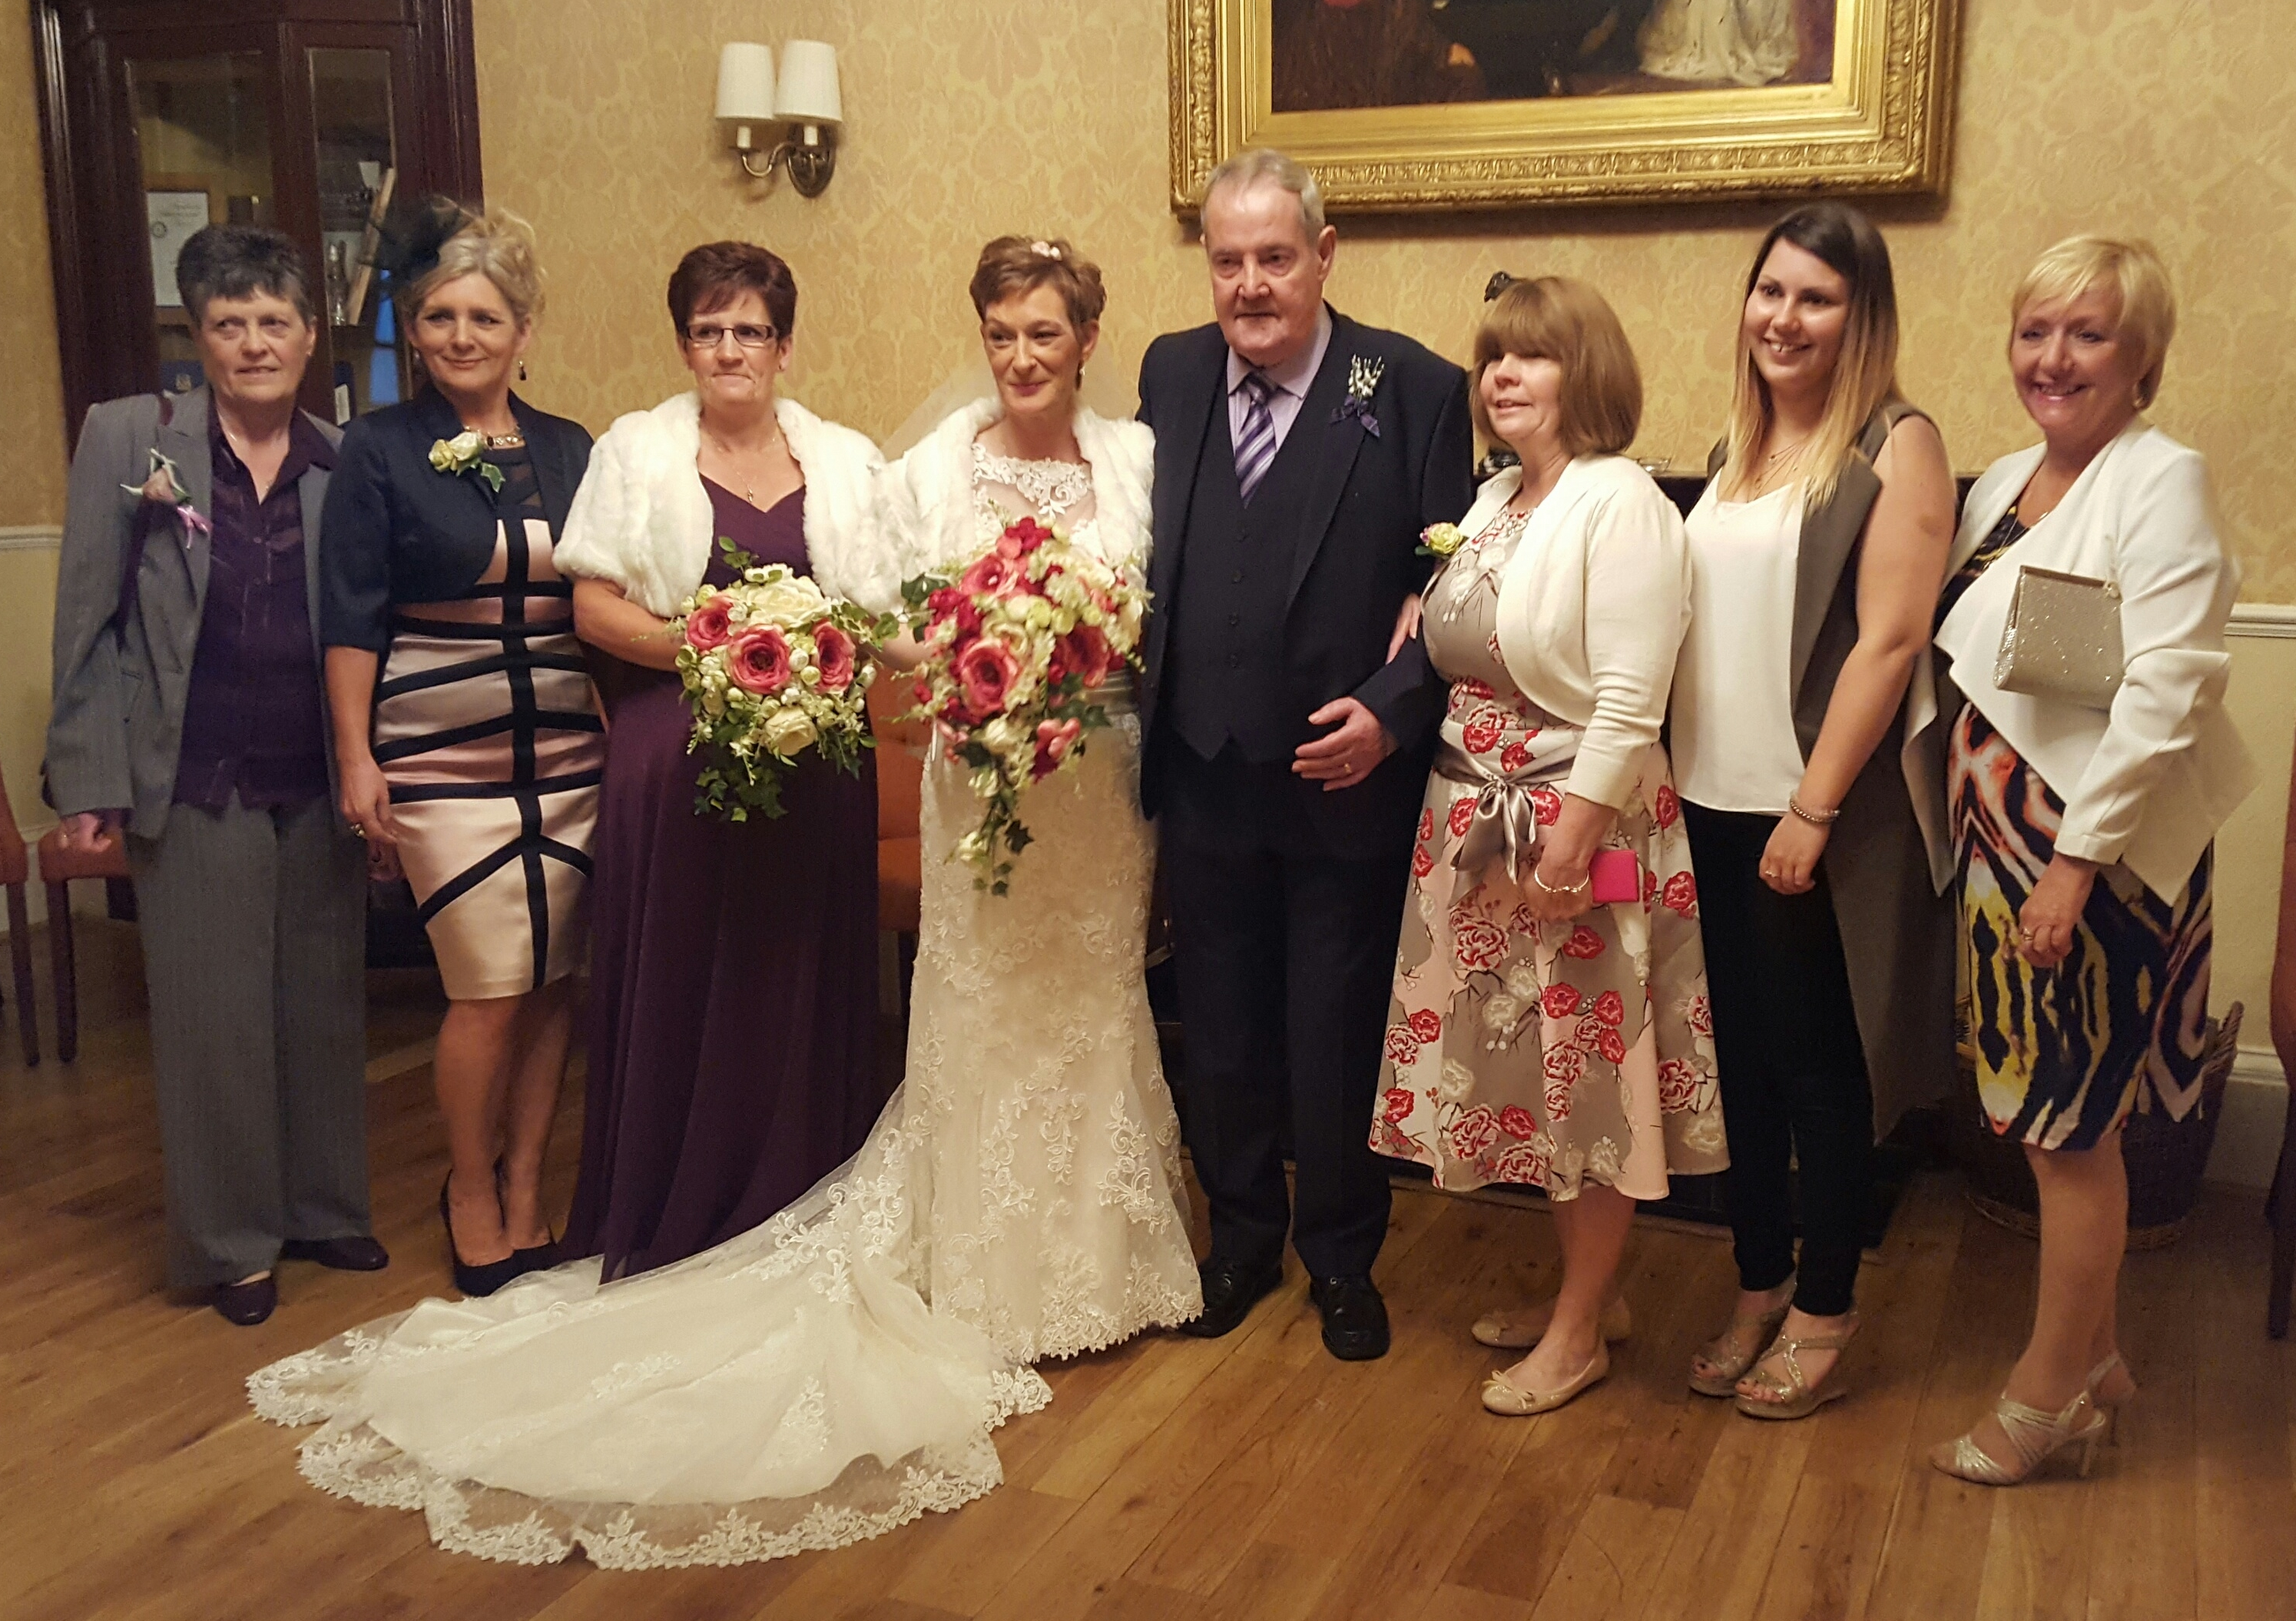 Pictured (left to right) Pat Maclean and Linda Toland of Kyle Court, maid of honour Diane Paton, Iain and Shona MacFarlane; Pauline Fairbairn of Kyle Court and Keana Mackenzie and Pauline Macdonald from the haematology department